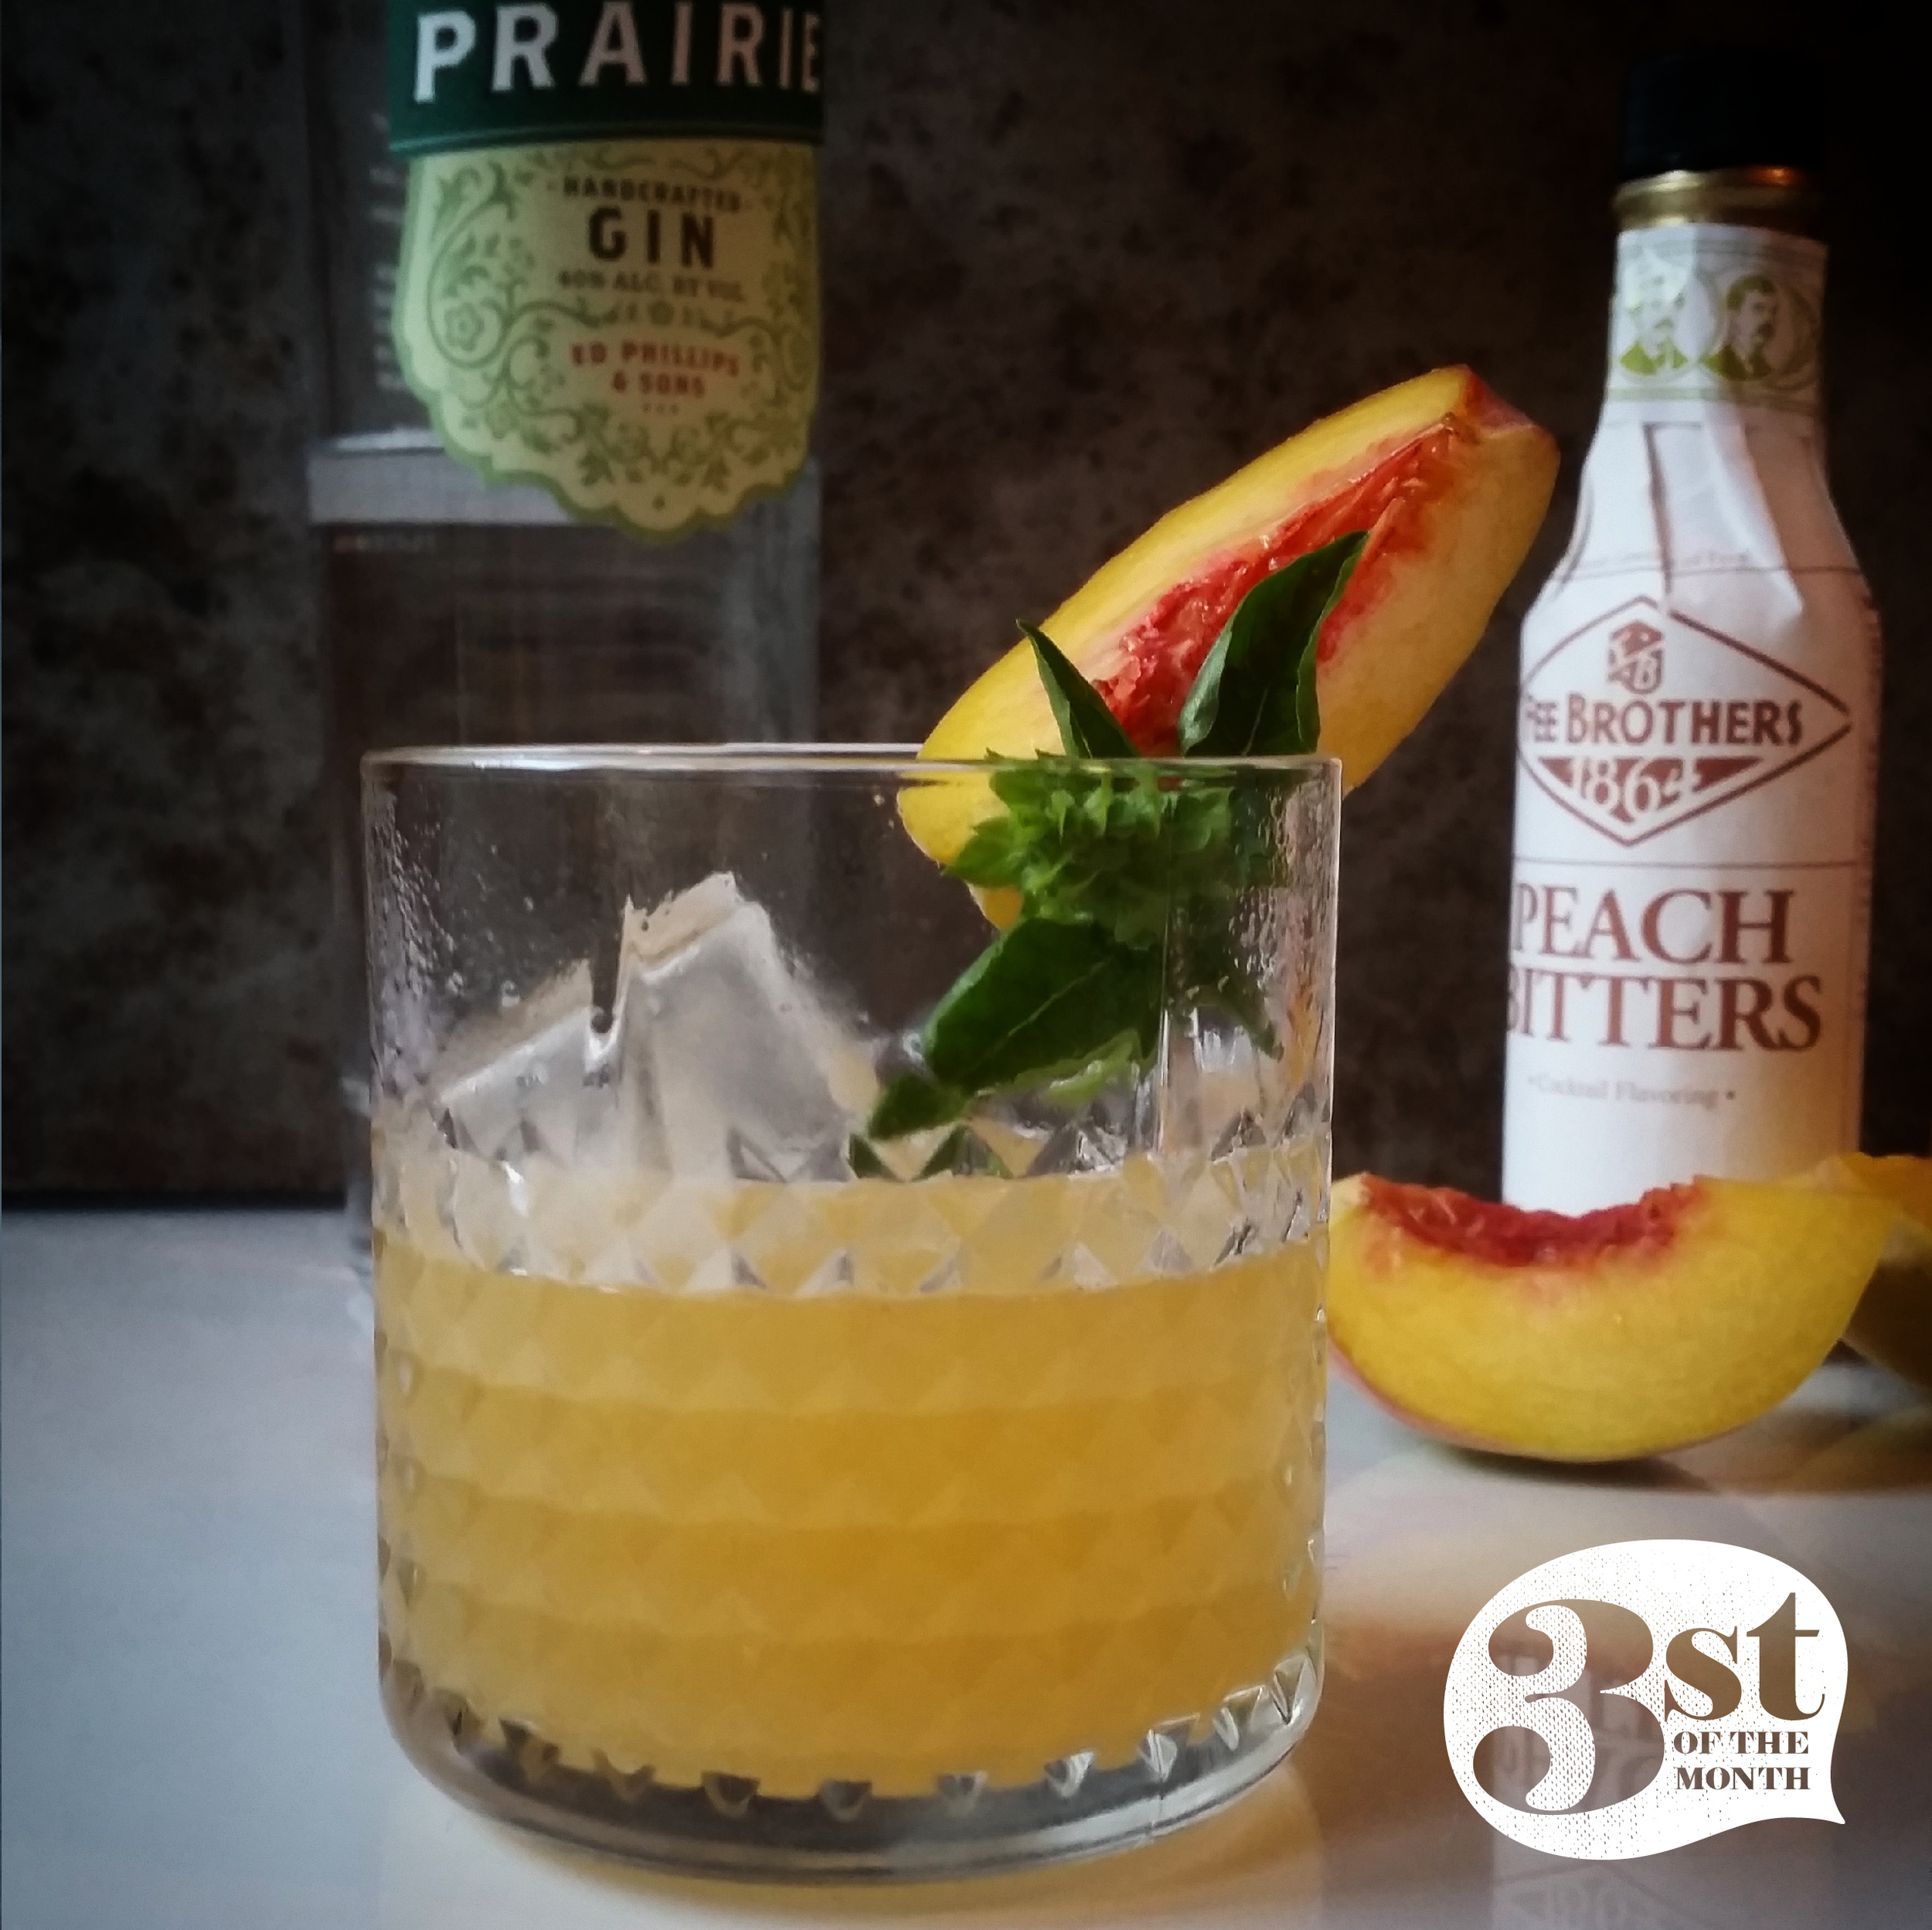 The Prairie Peach cocktail - gin, muddled peaches and basil.